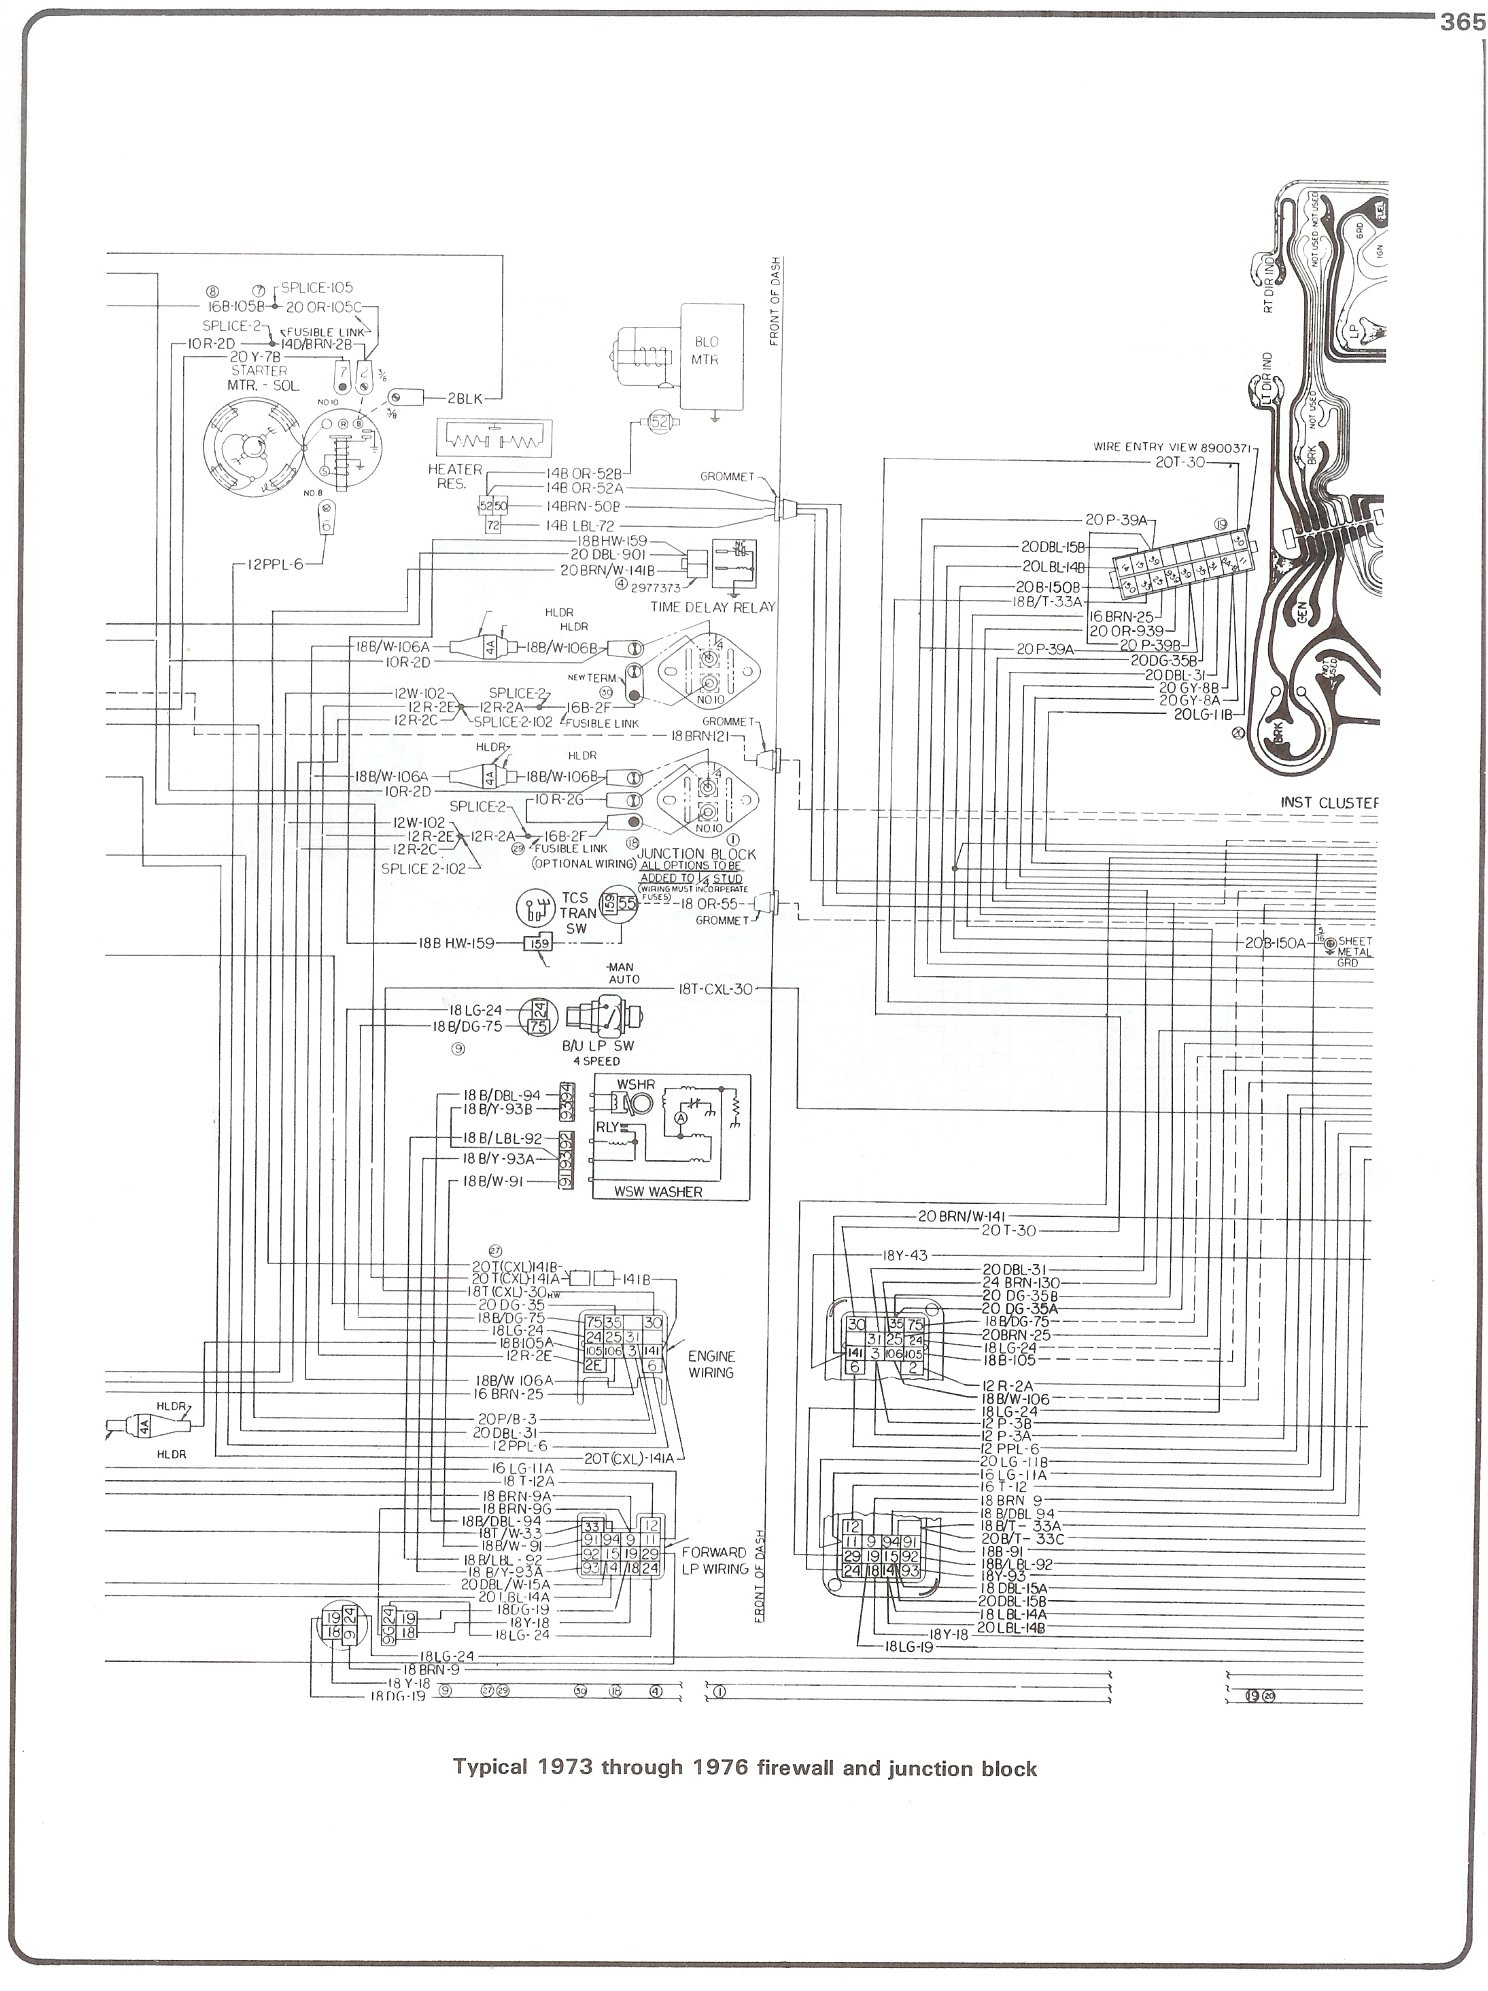 73 76_firewall_junct complete 73 87 wiring diagrams 1978 chevy truck fuse box diagram at cita.asia